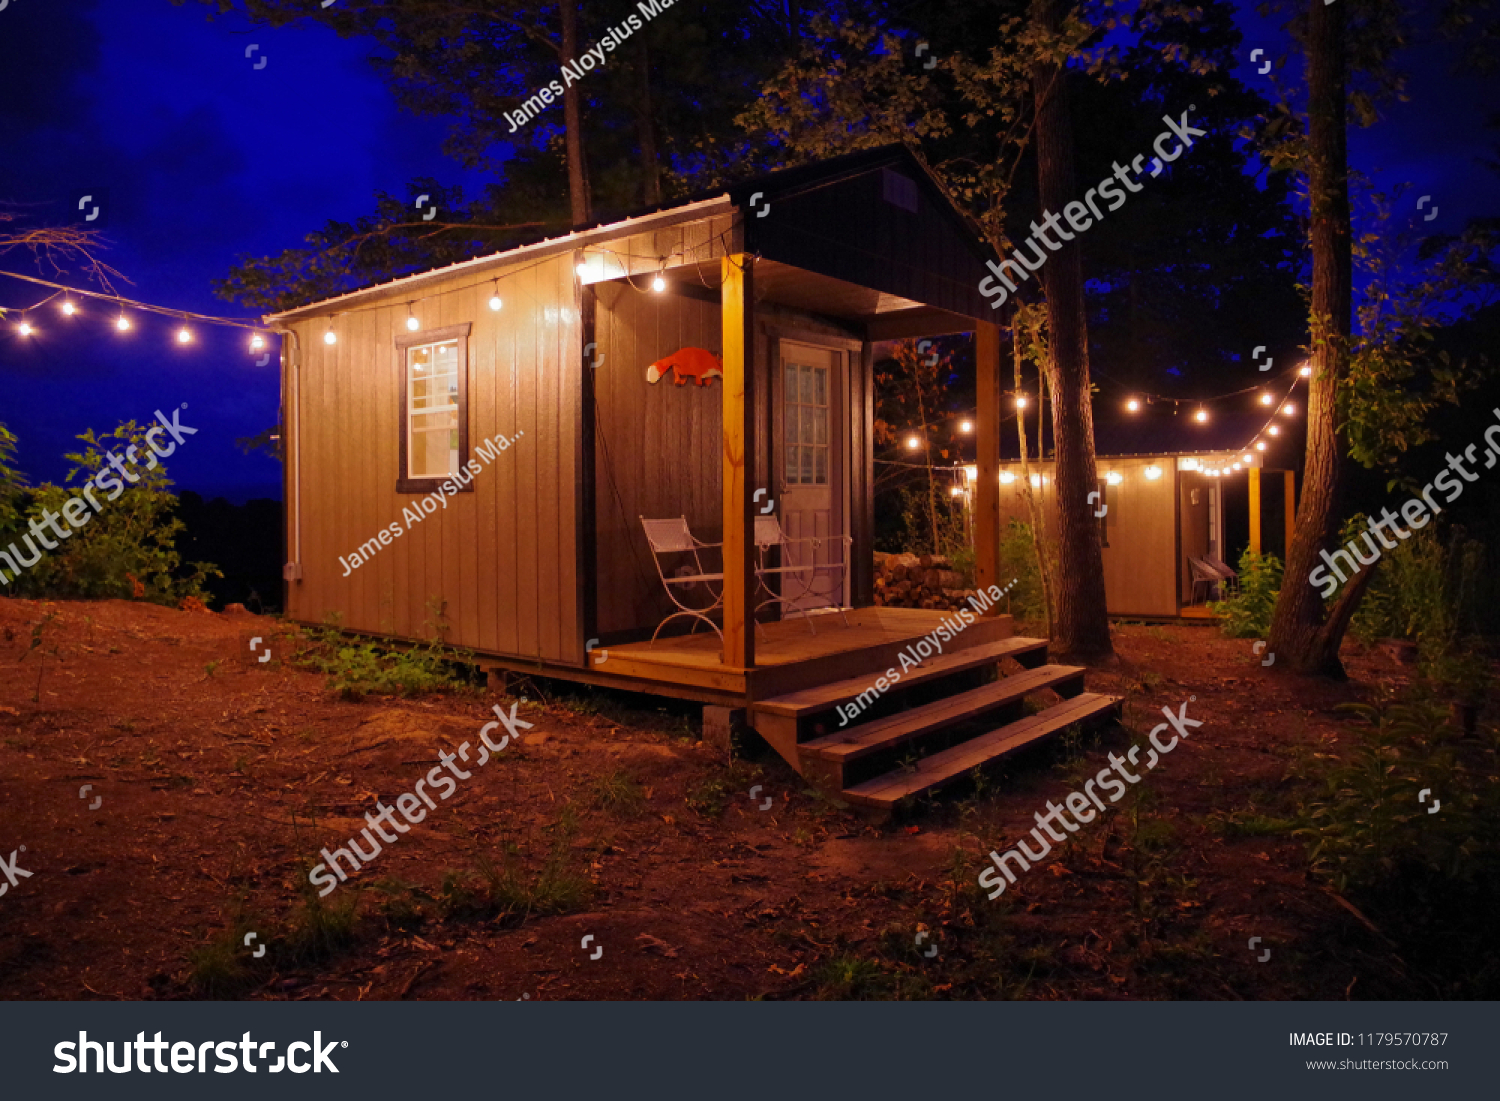 https www shutterstock com image photo airbnb tiny house cabin exterior christmas 1179570787